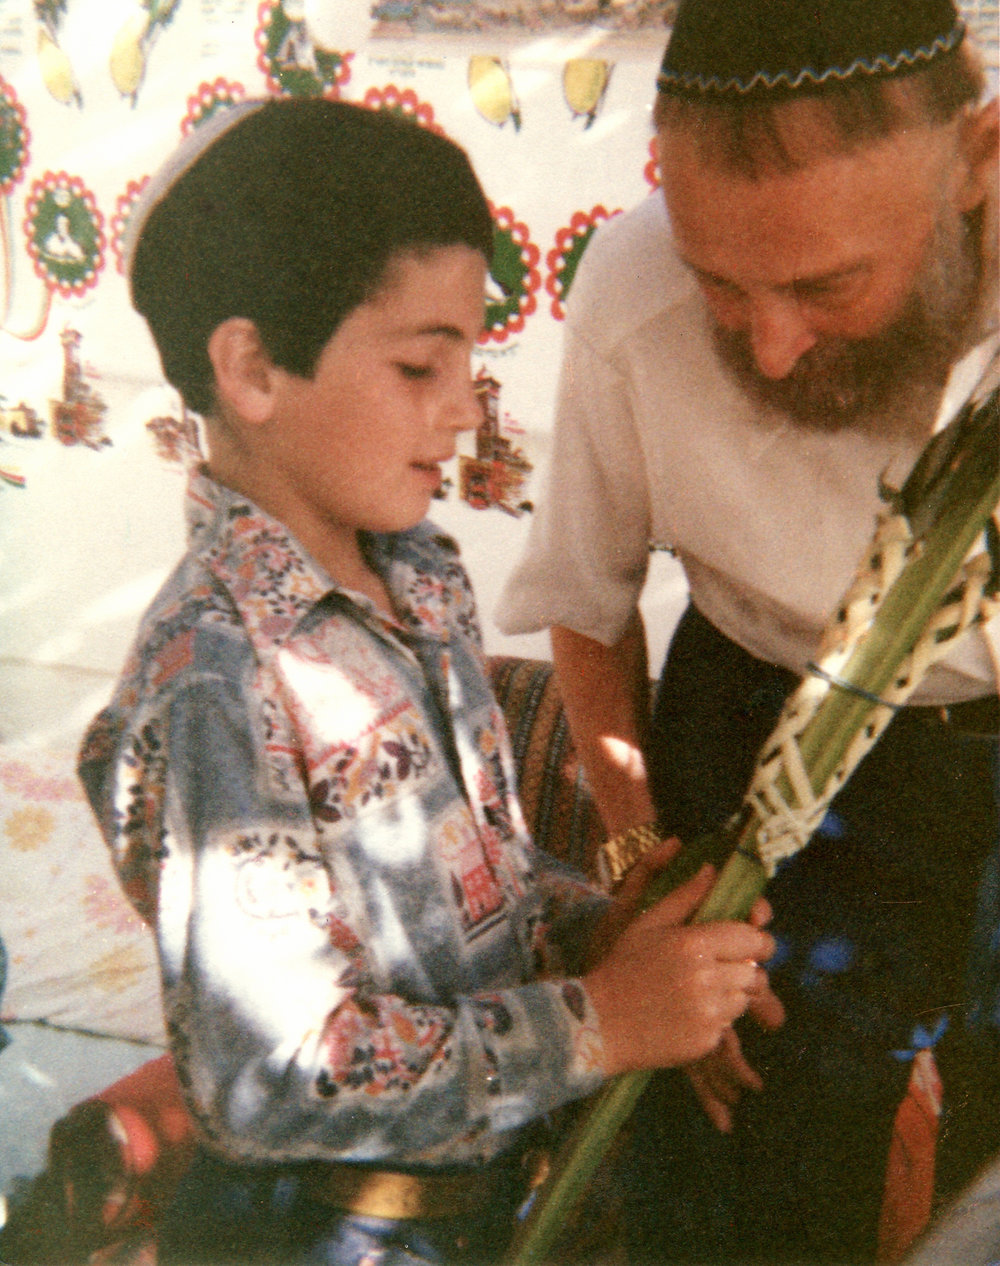 Figure 15 - Sukkot in Jerusalem with Rabbi Moshe Ben Meir, September 1977